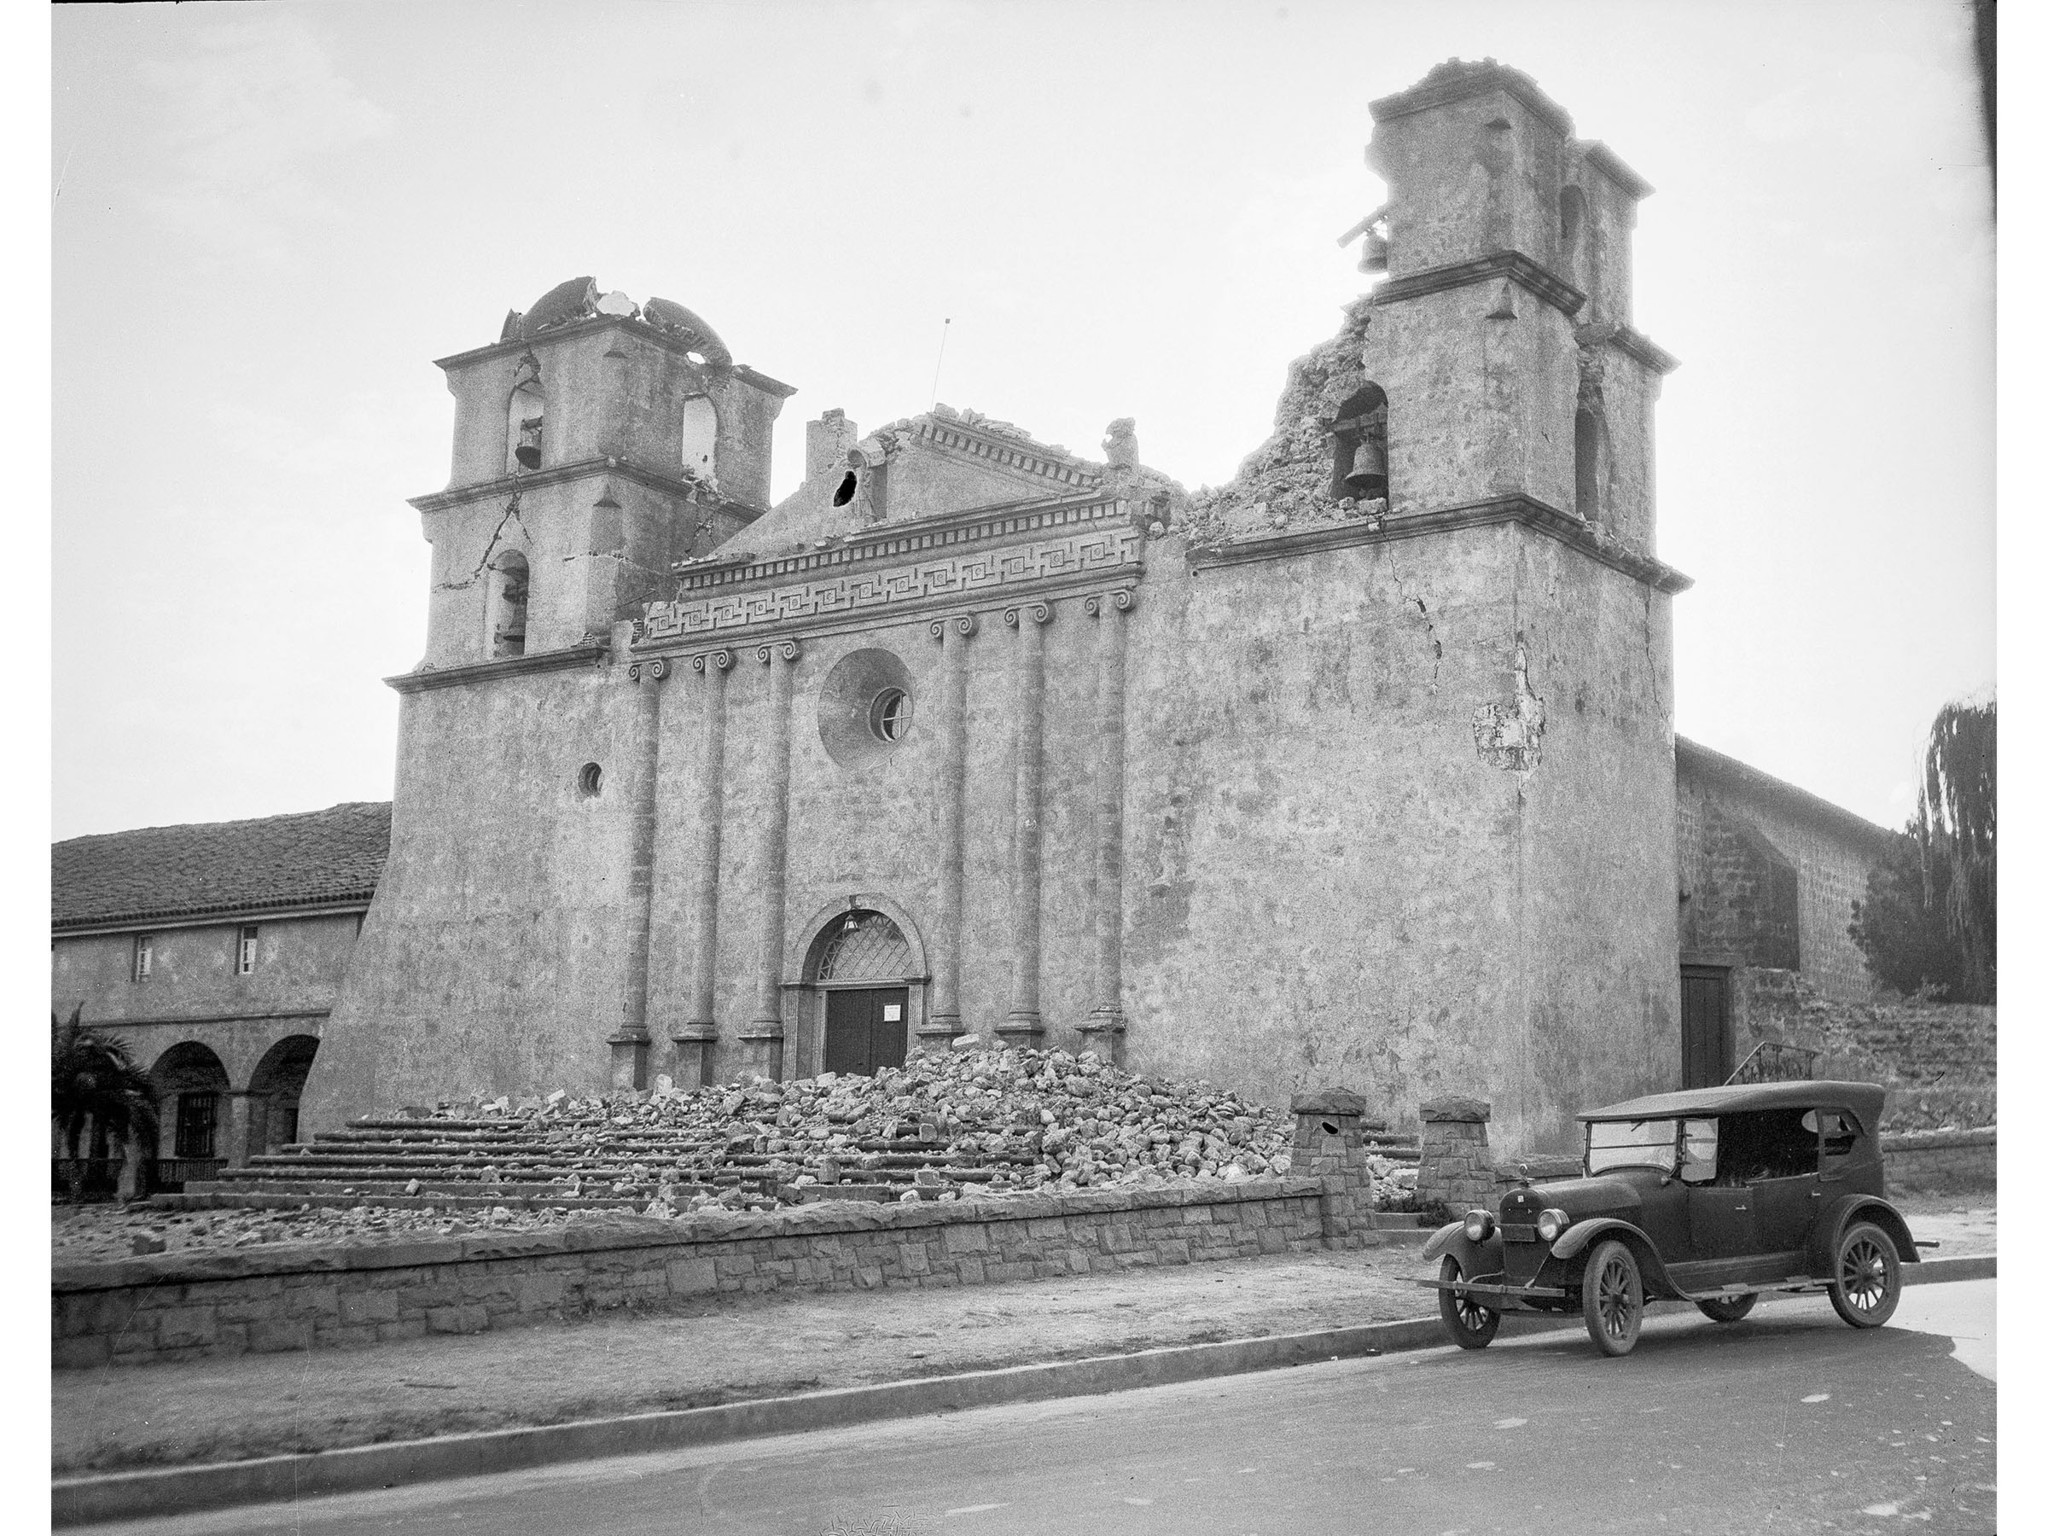 June 1925: Exterior of Mission Santa Barbara following the 6.8 earthquake of June 29, 1925. This pho